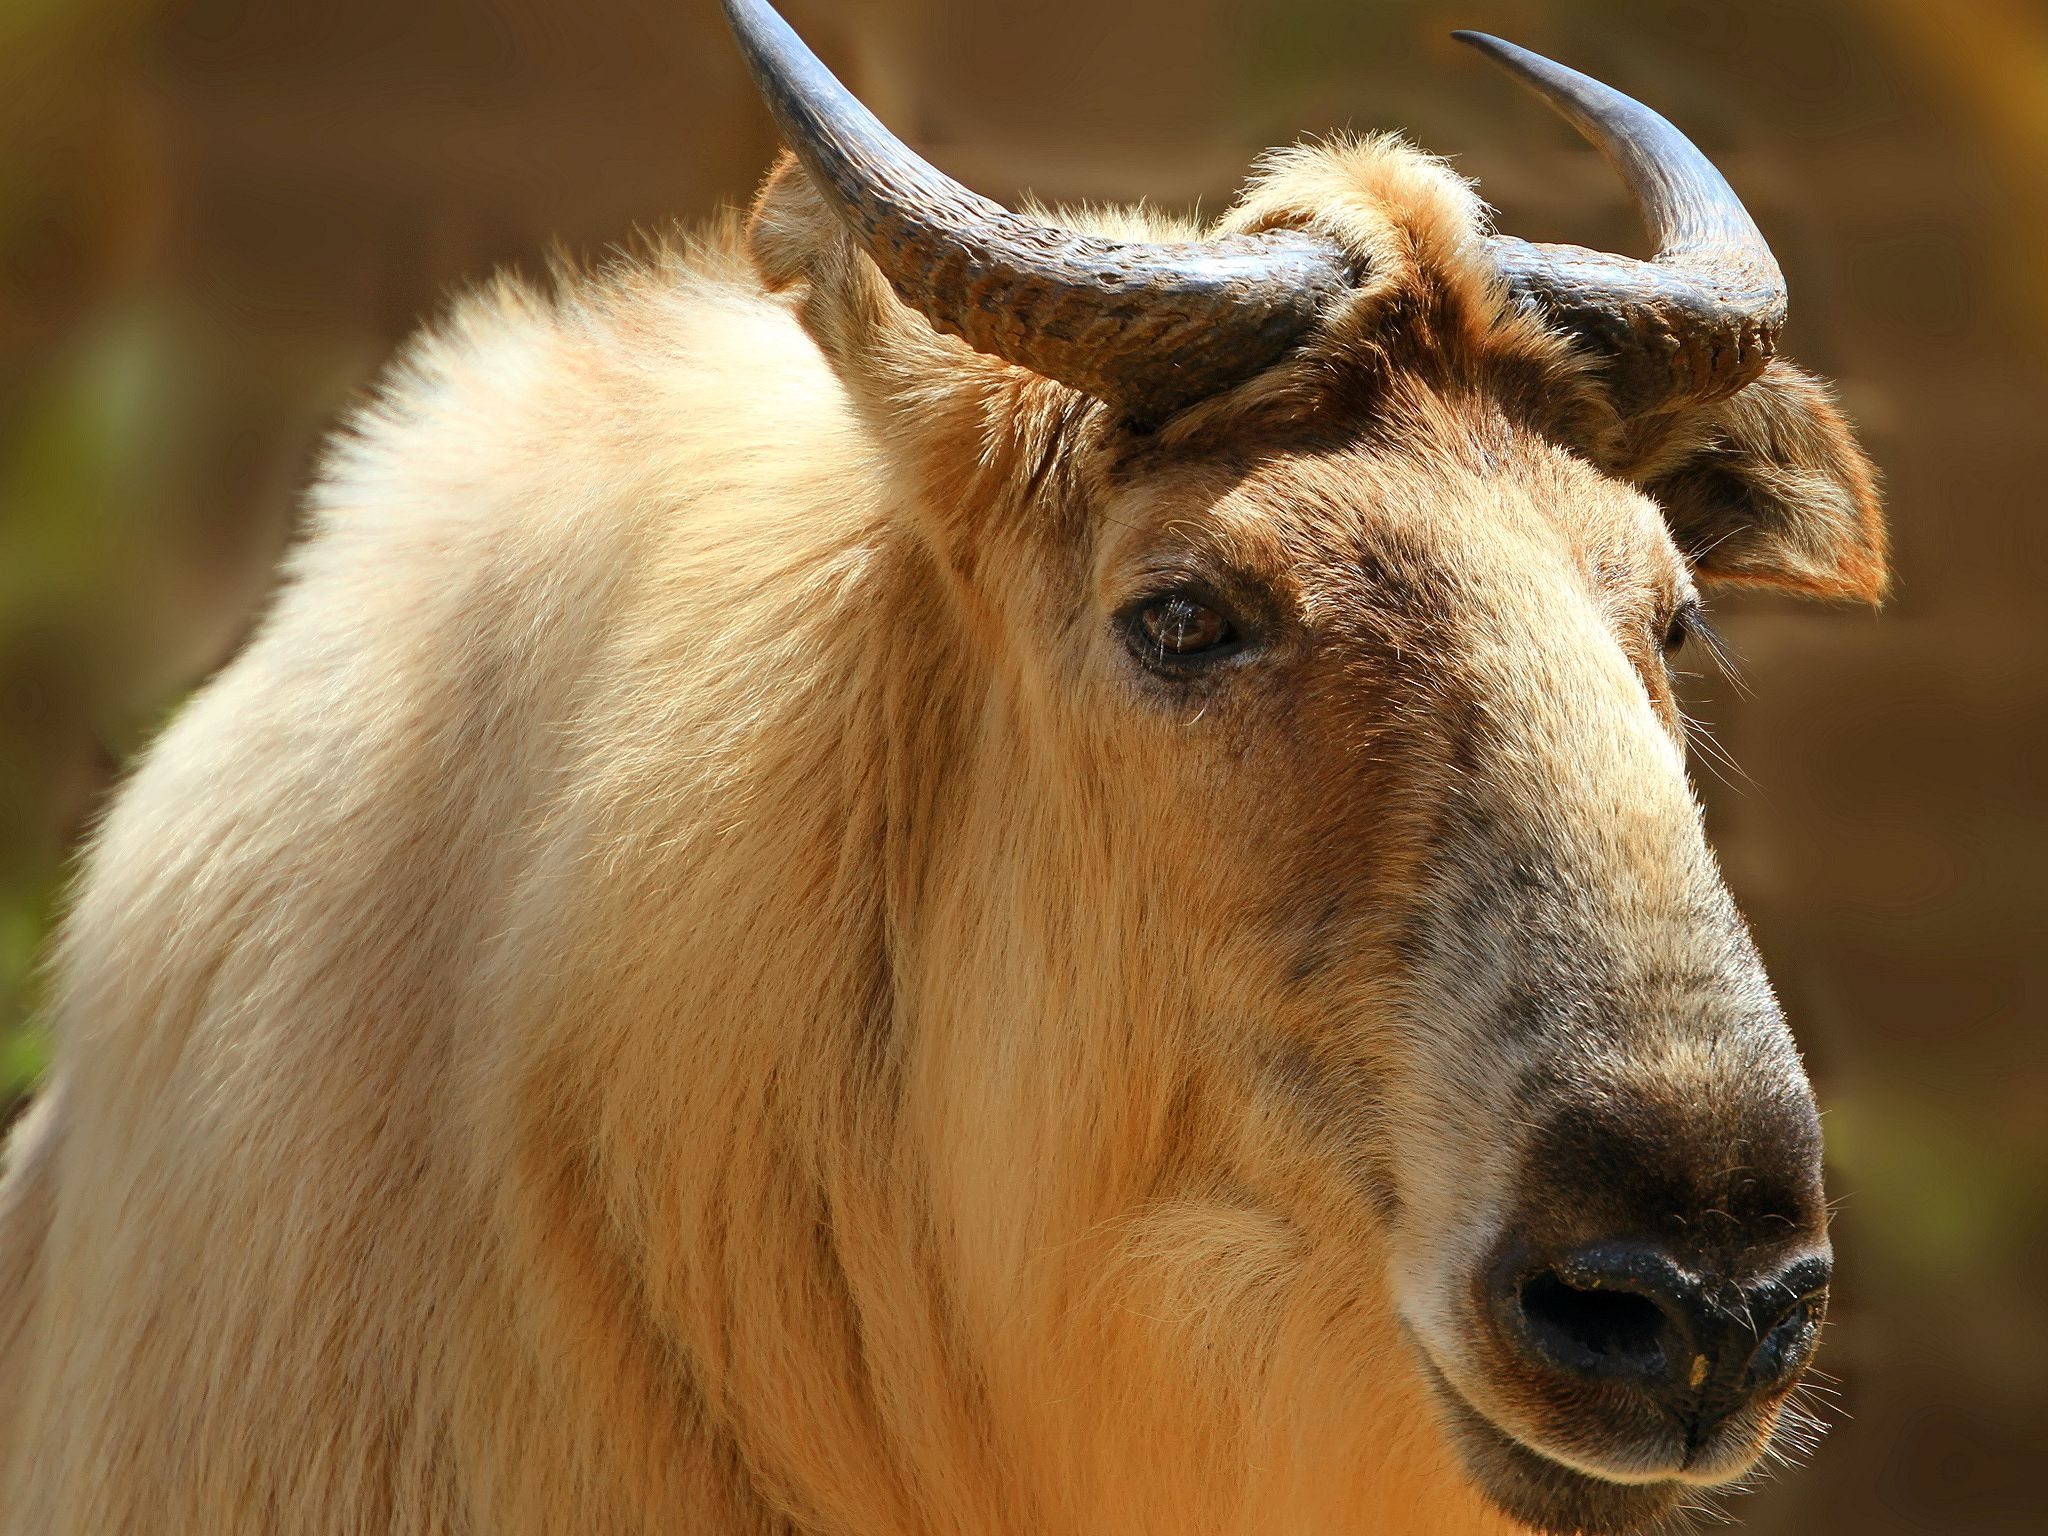 110645 download wallpaper Animals, Sichuan Takin, Sichuan Tatin, Takin, Tatin, Head, Horns screensavers and pictures for free